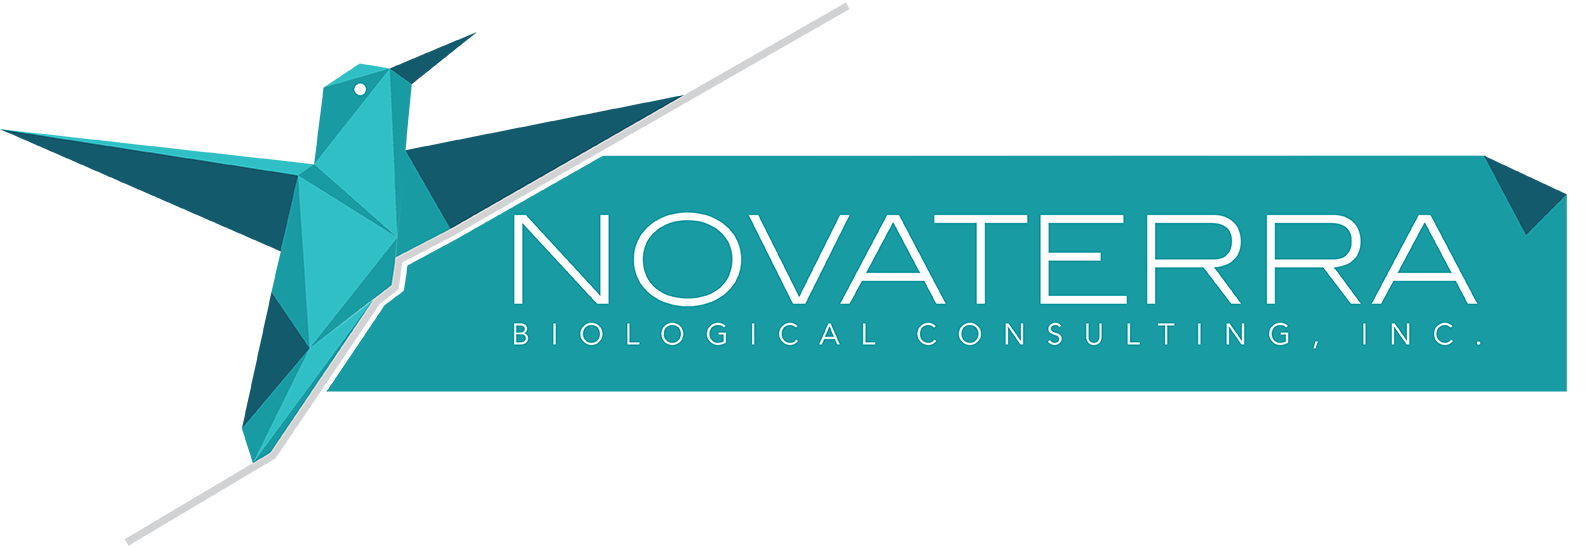 Novaterra Biological Consulting